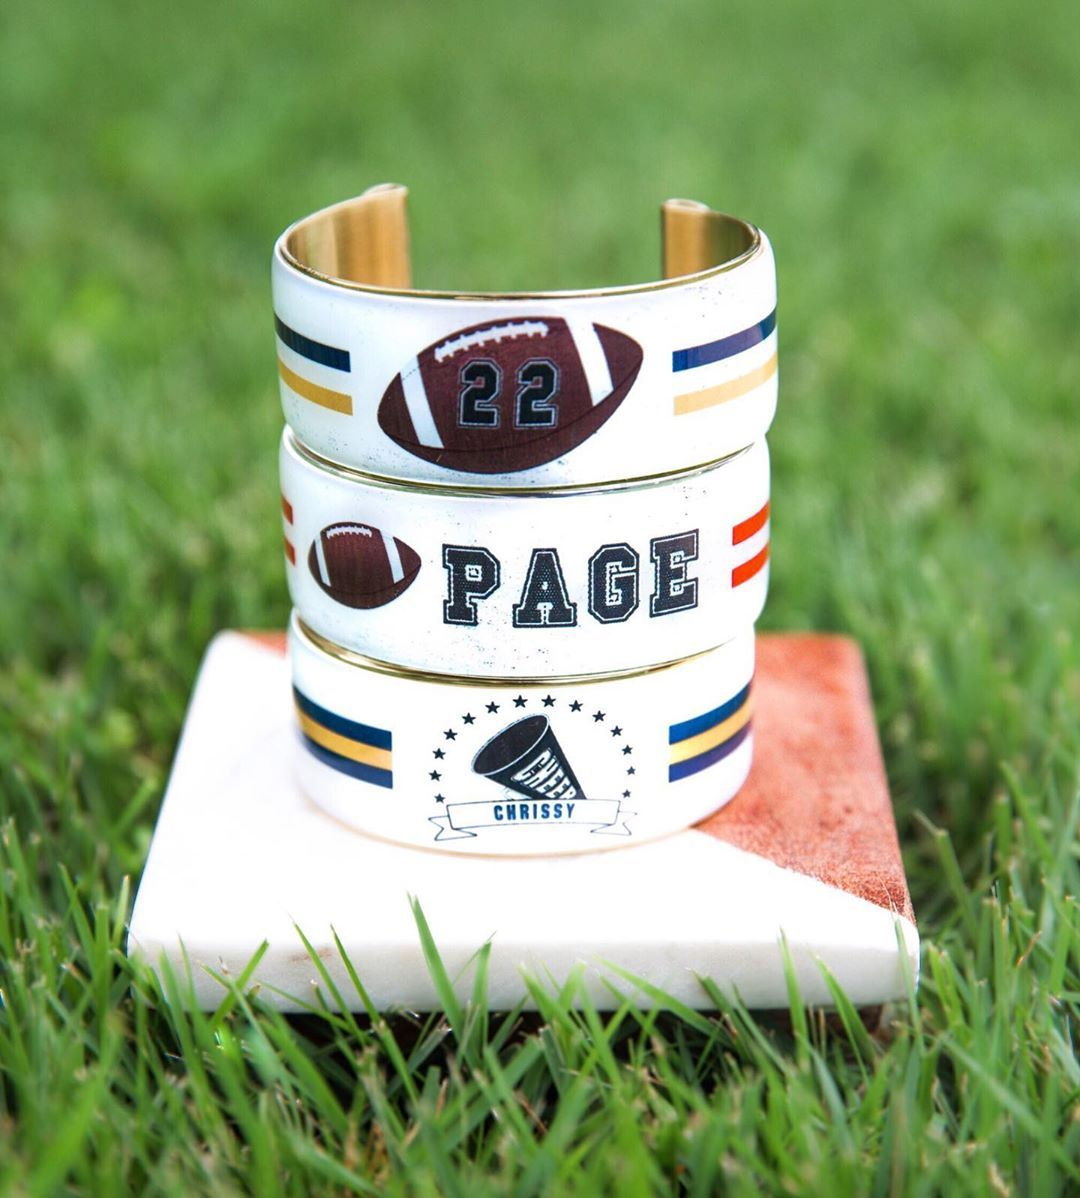 Game Day image by Rustic Cuff Back to school, Chrissy